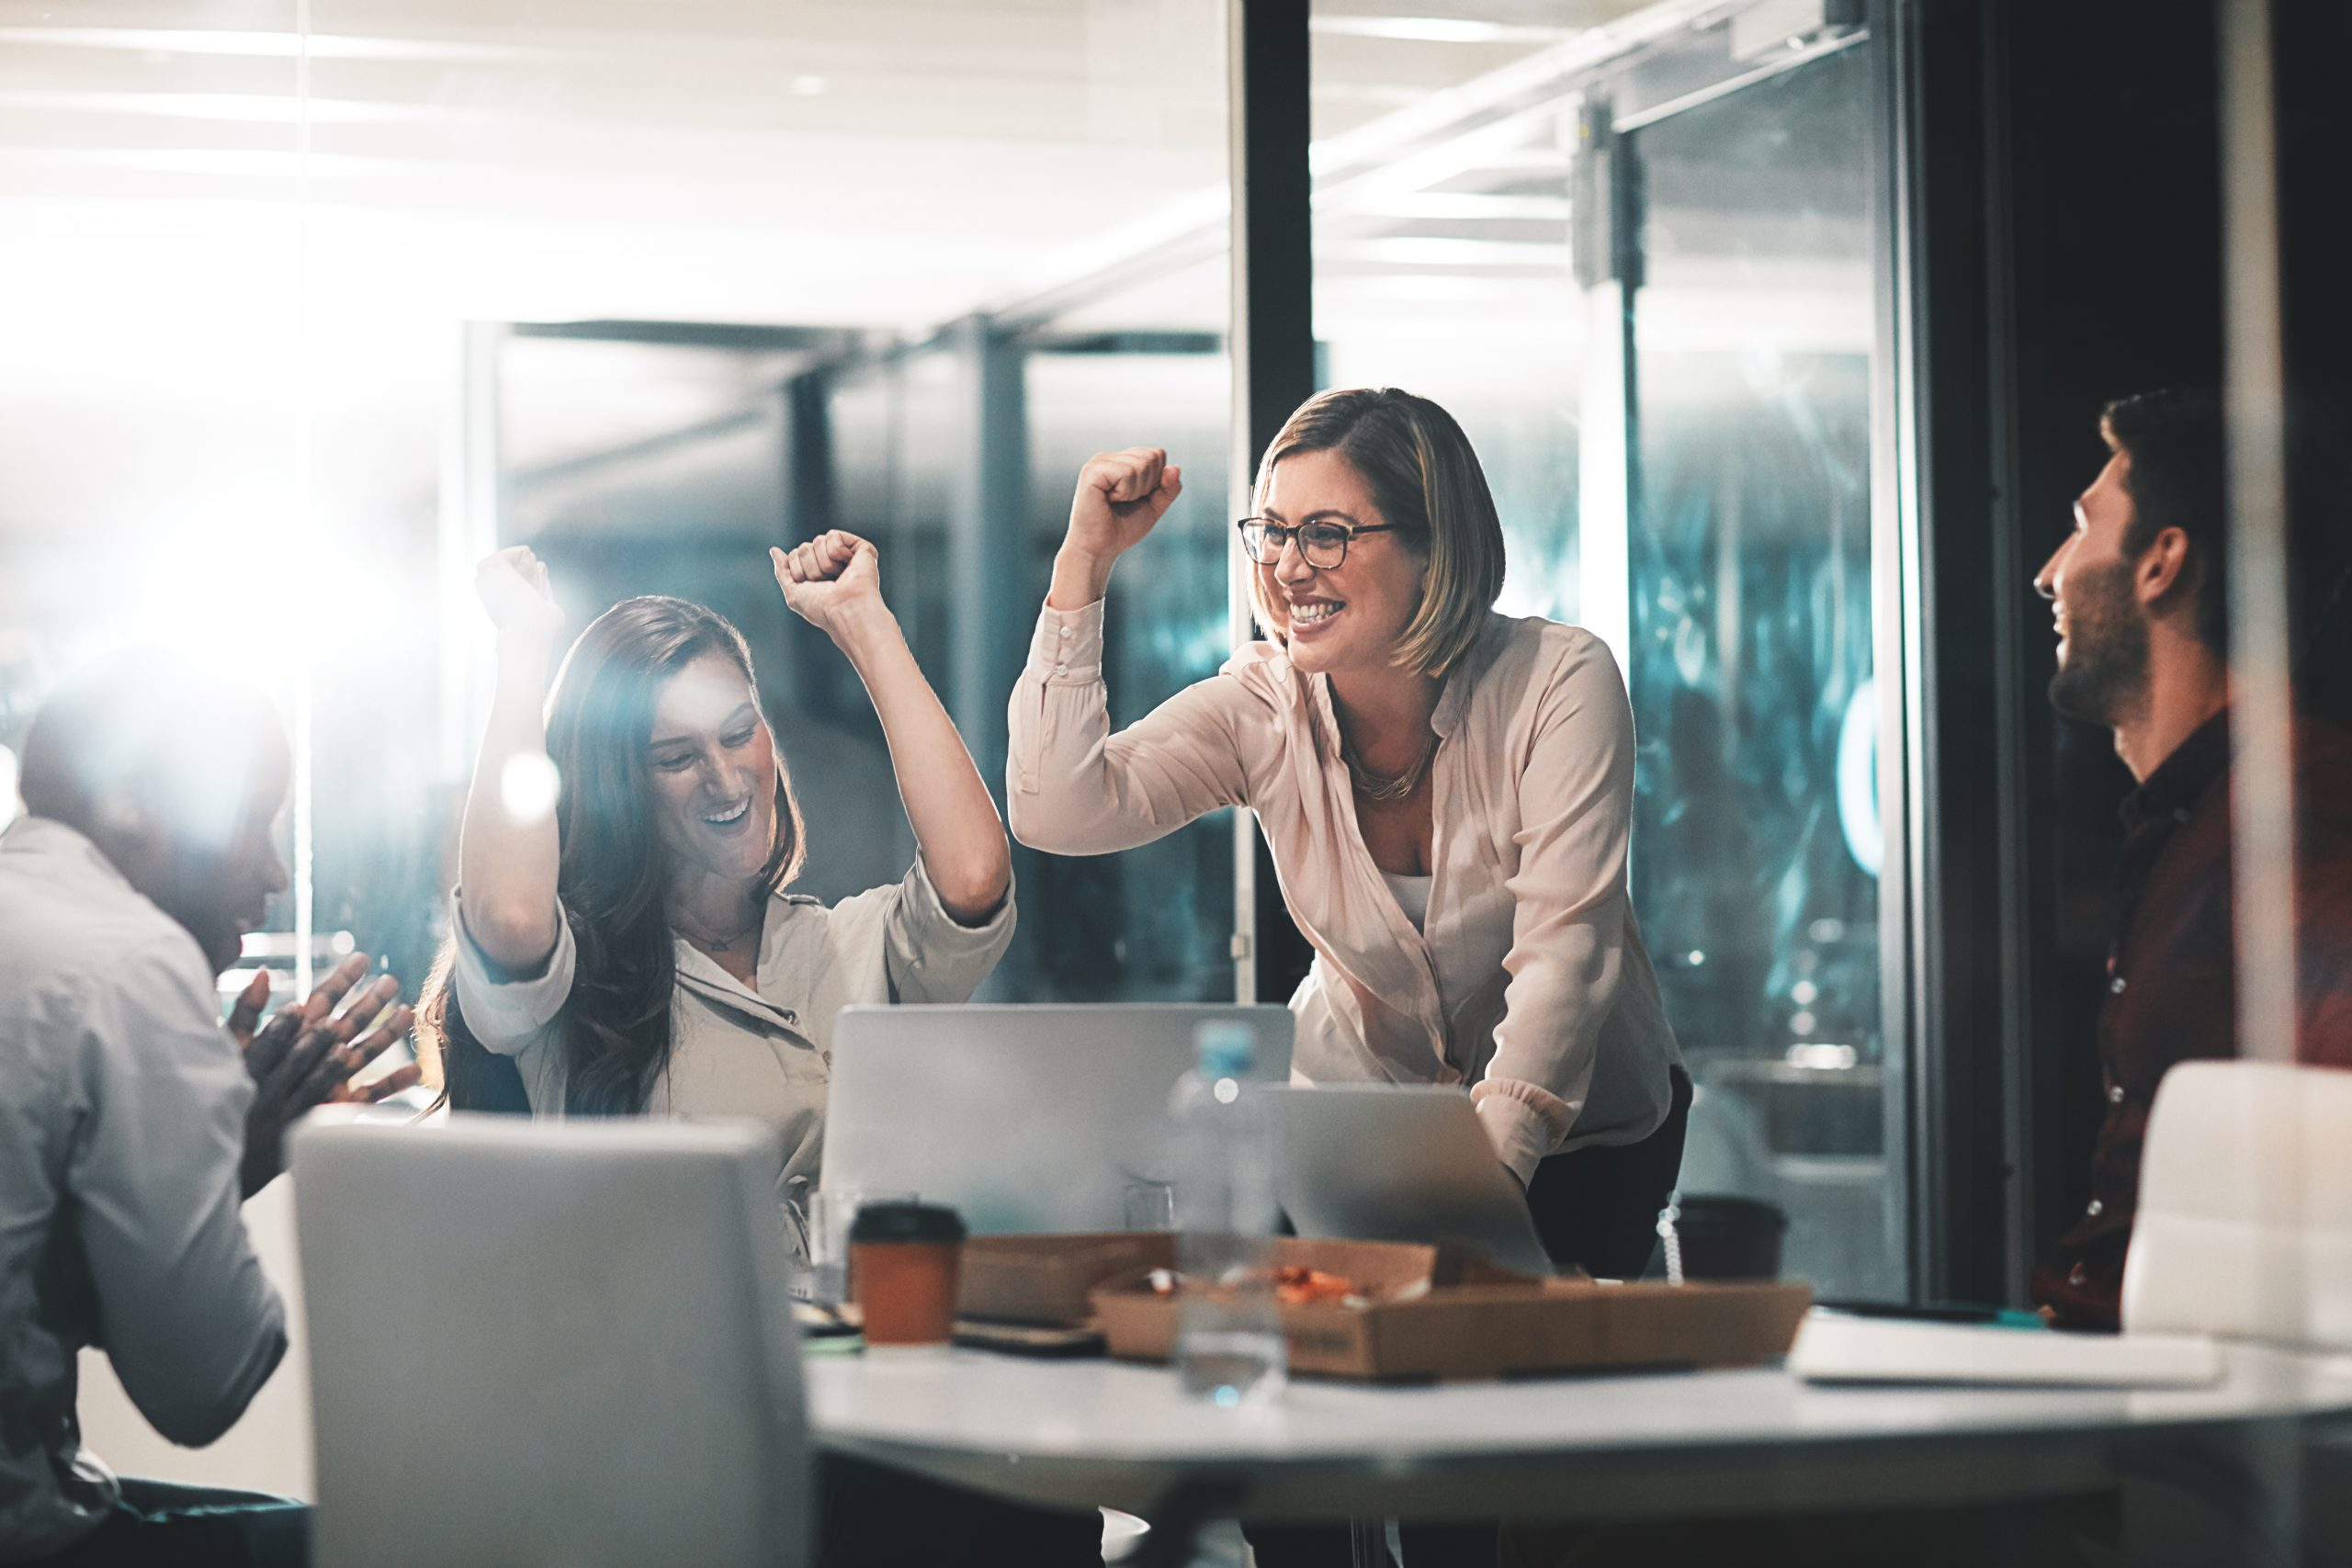 Shot of colleagues celebrating during a meeting in a modern office